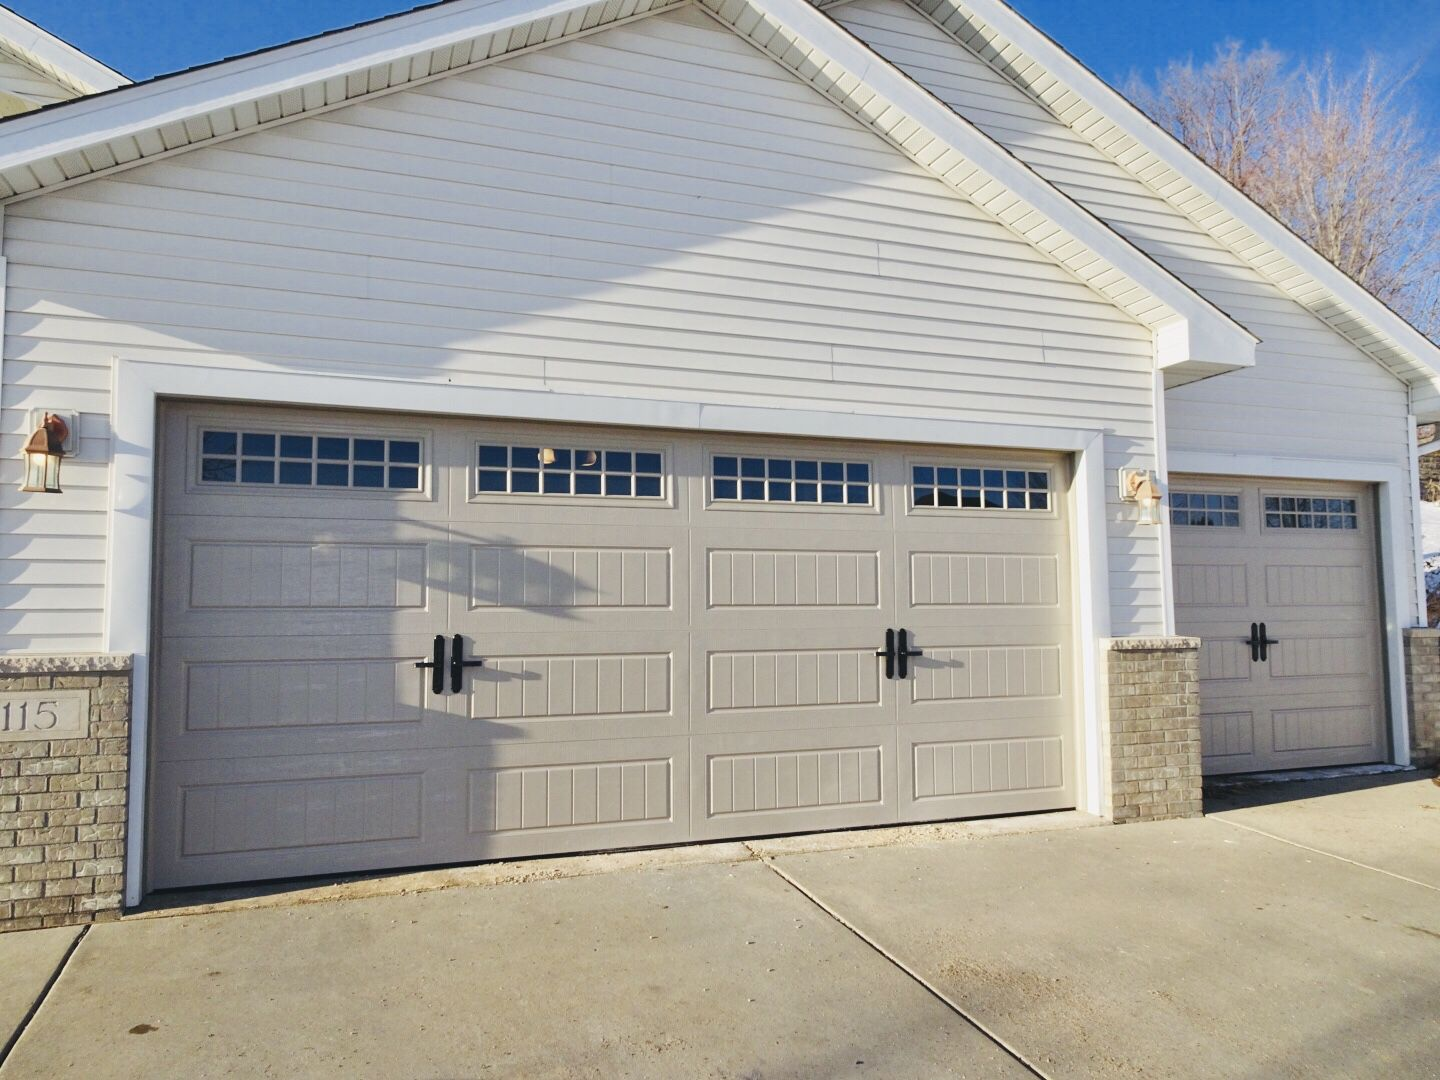 Amarr Hillcrest 3000 Garage Door In Sandtone Garage Door Styles Carriage House Doors Garage Doors